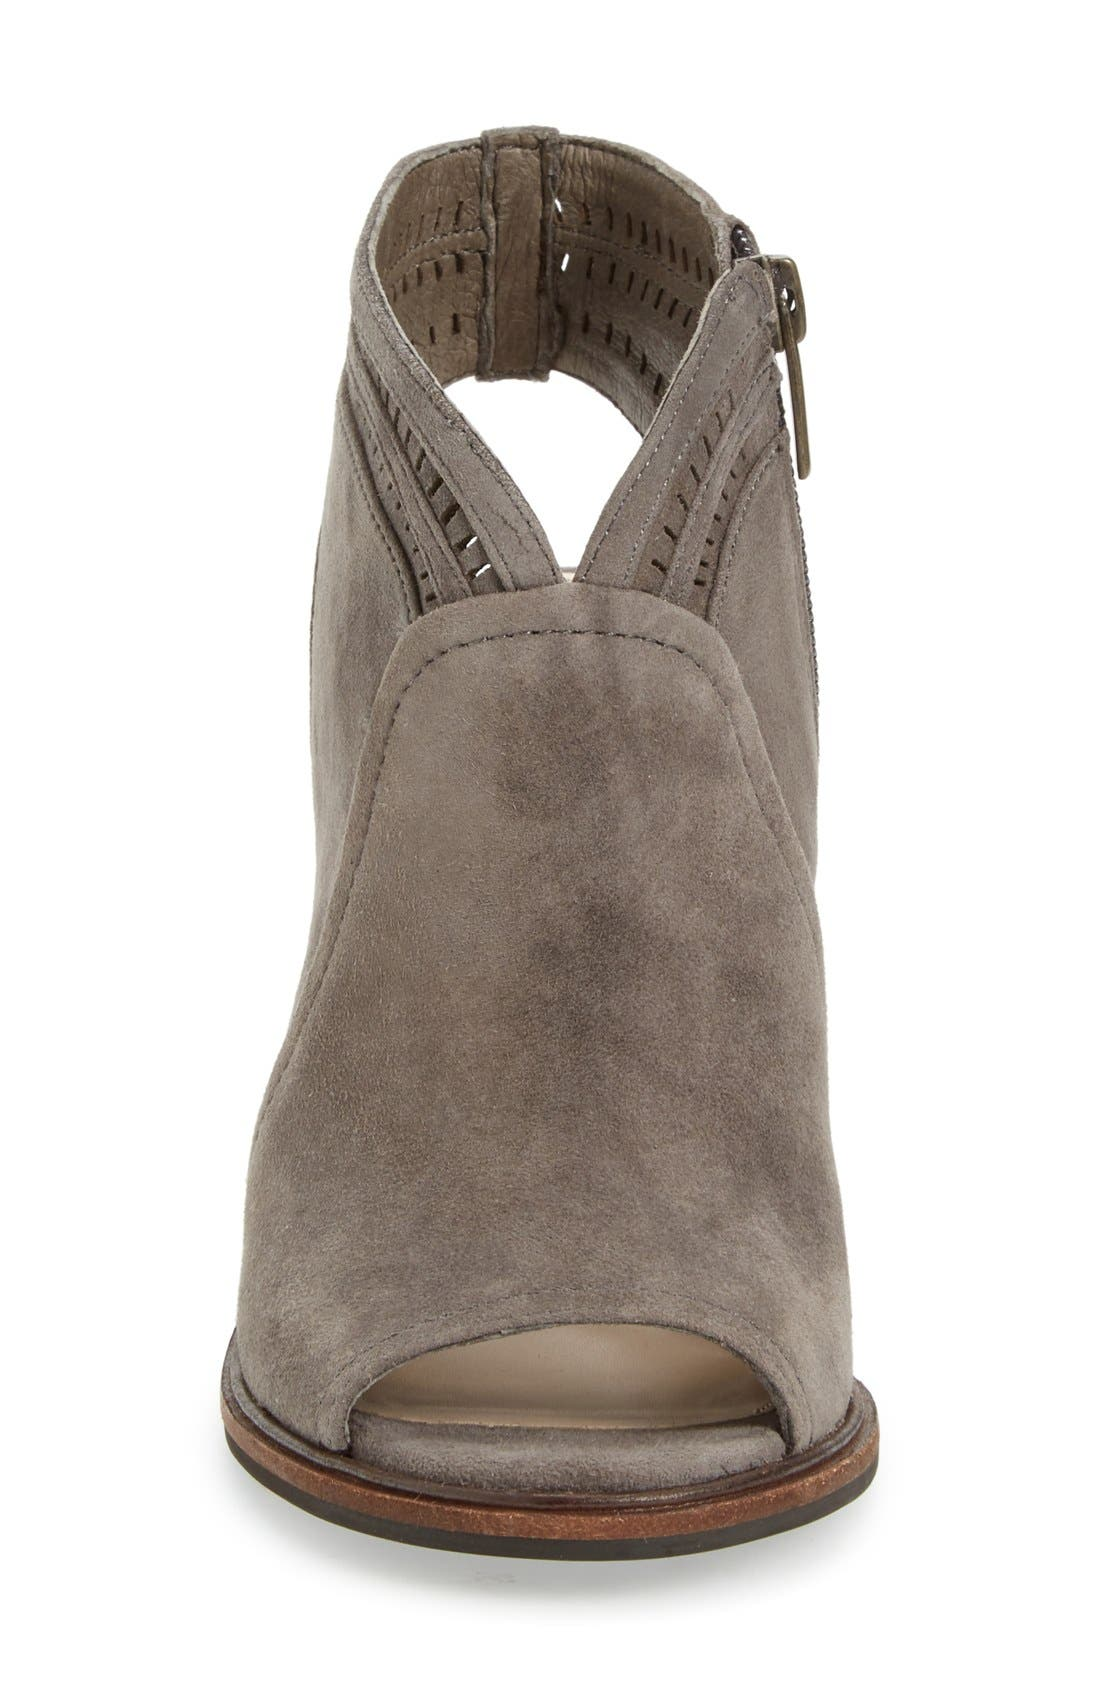 Alternate Image 3  - Vince Camuto 'Koral' Perforated Open Toe Bootie (Women) (Nordstrom Exclusive)